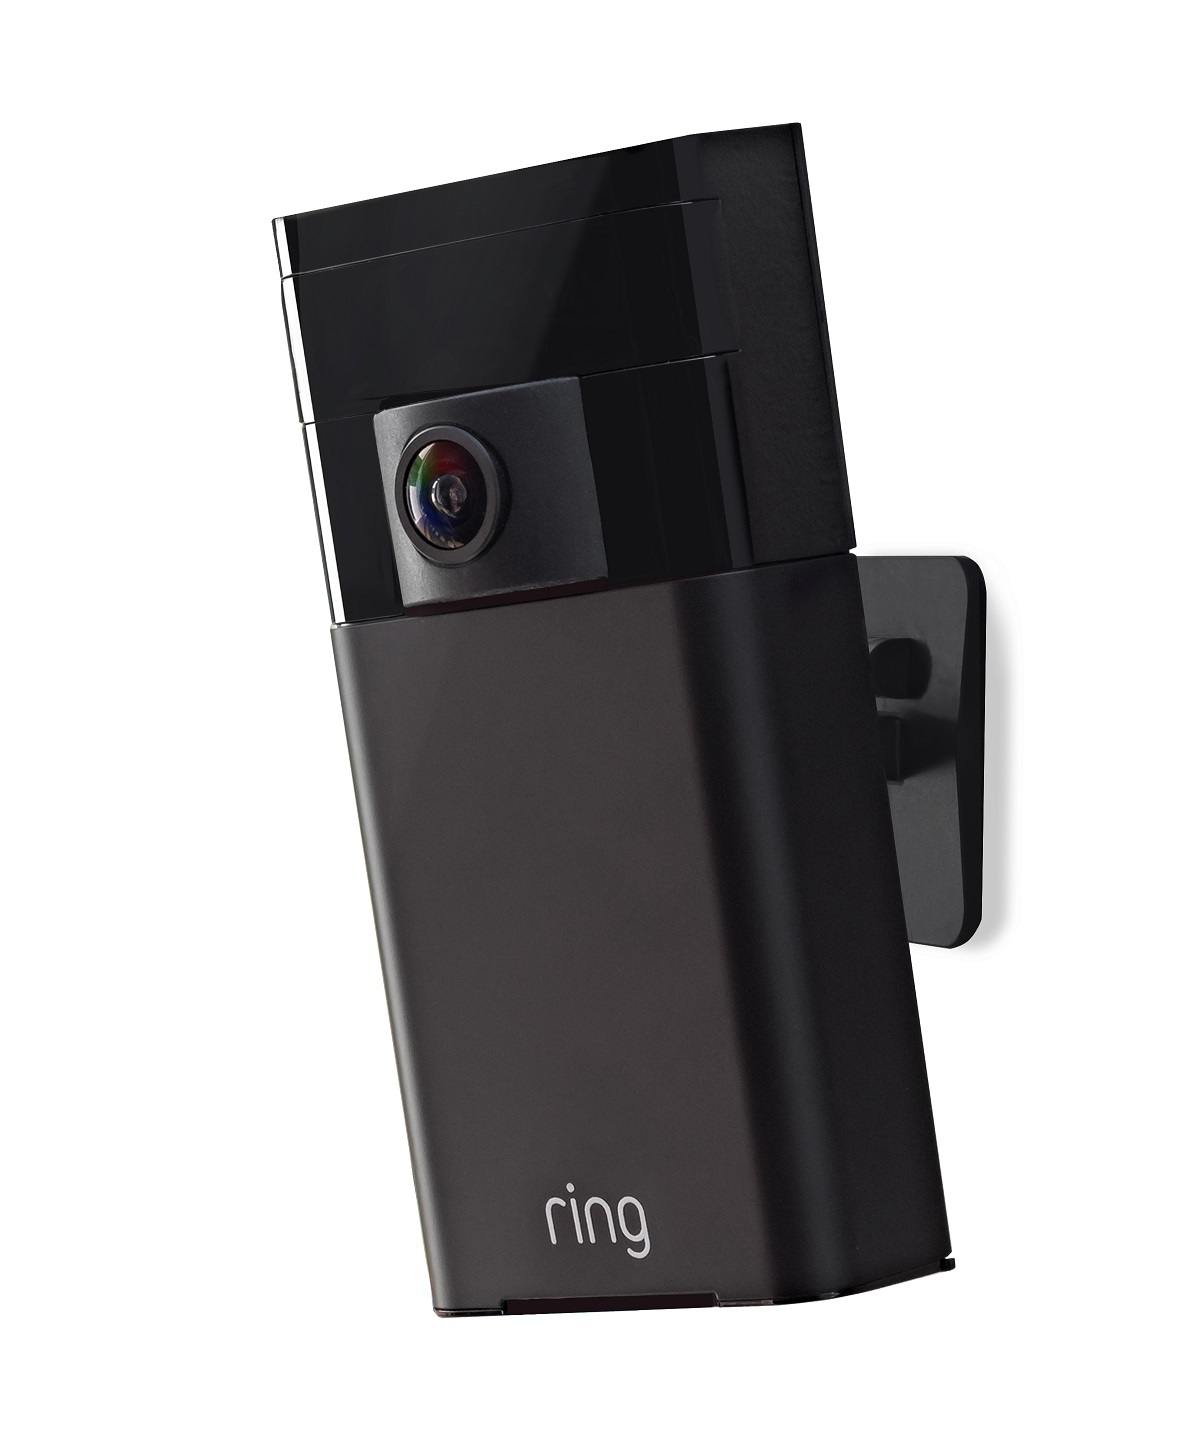 Ring Stick Up Cam